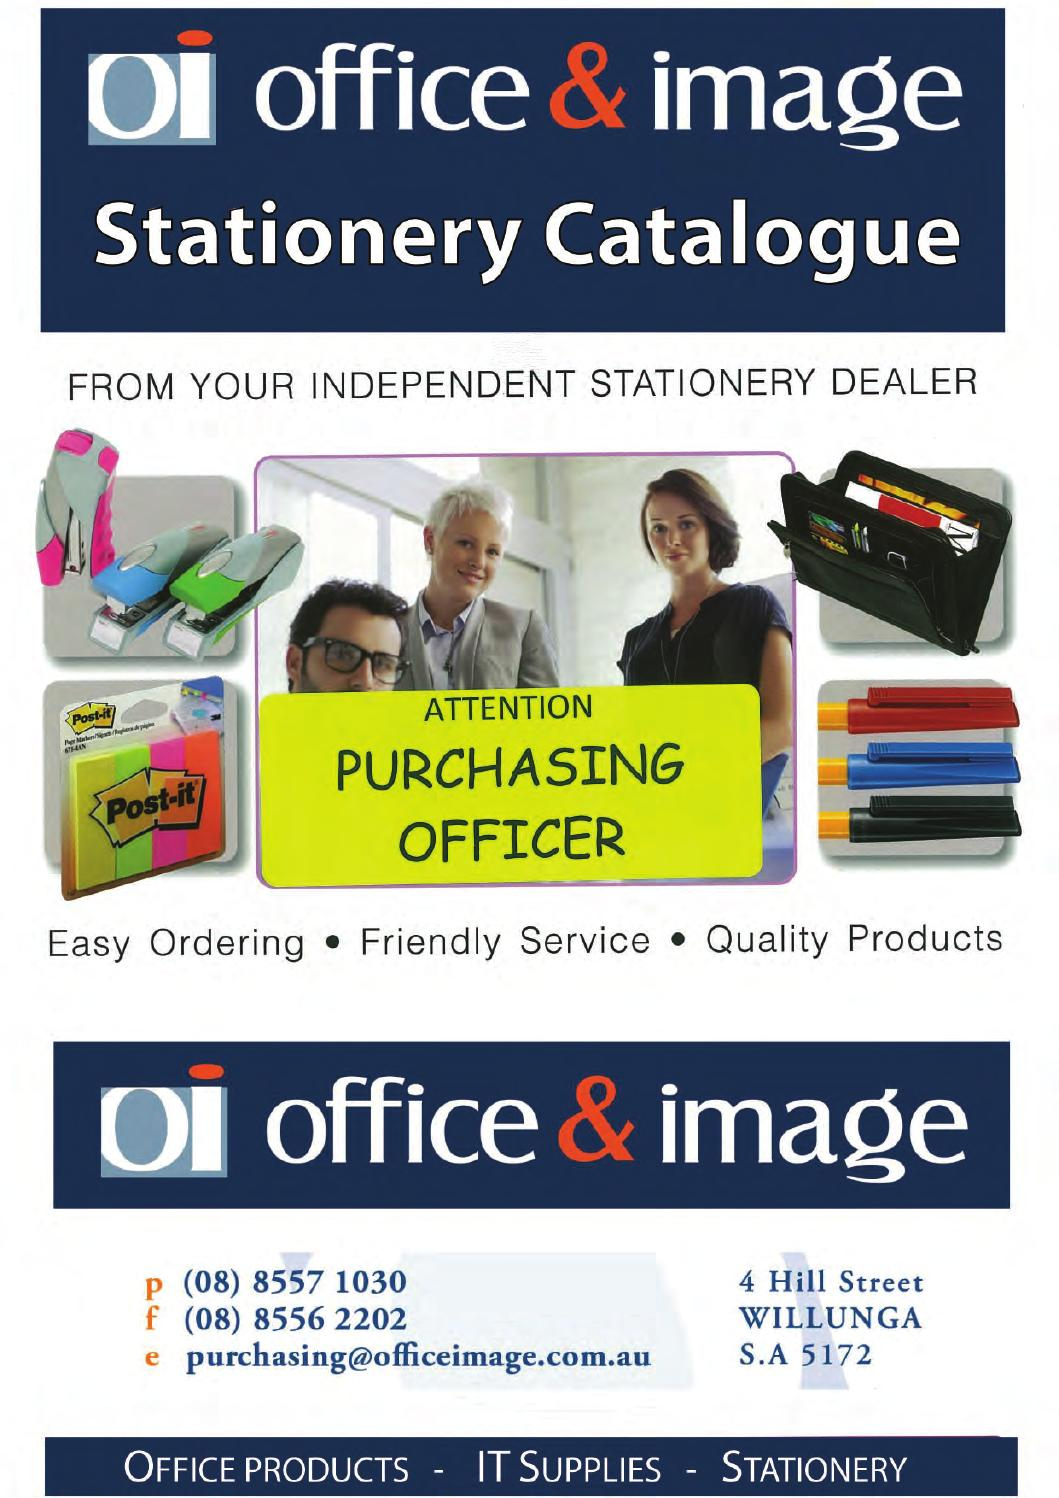 Stationery Catalogue By Office & Image Services - Issuu